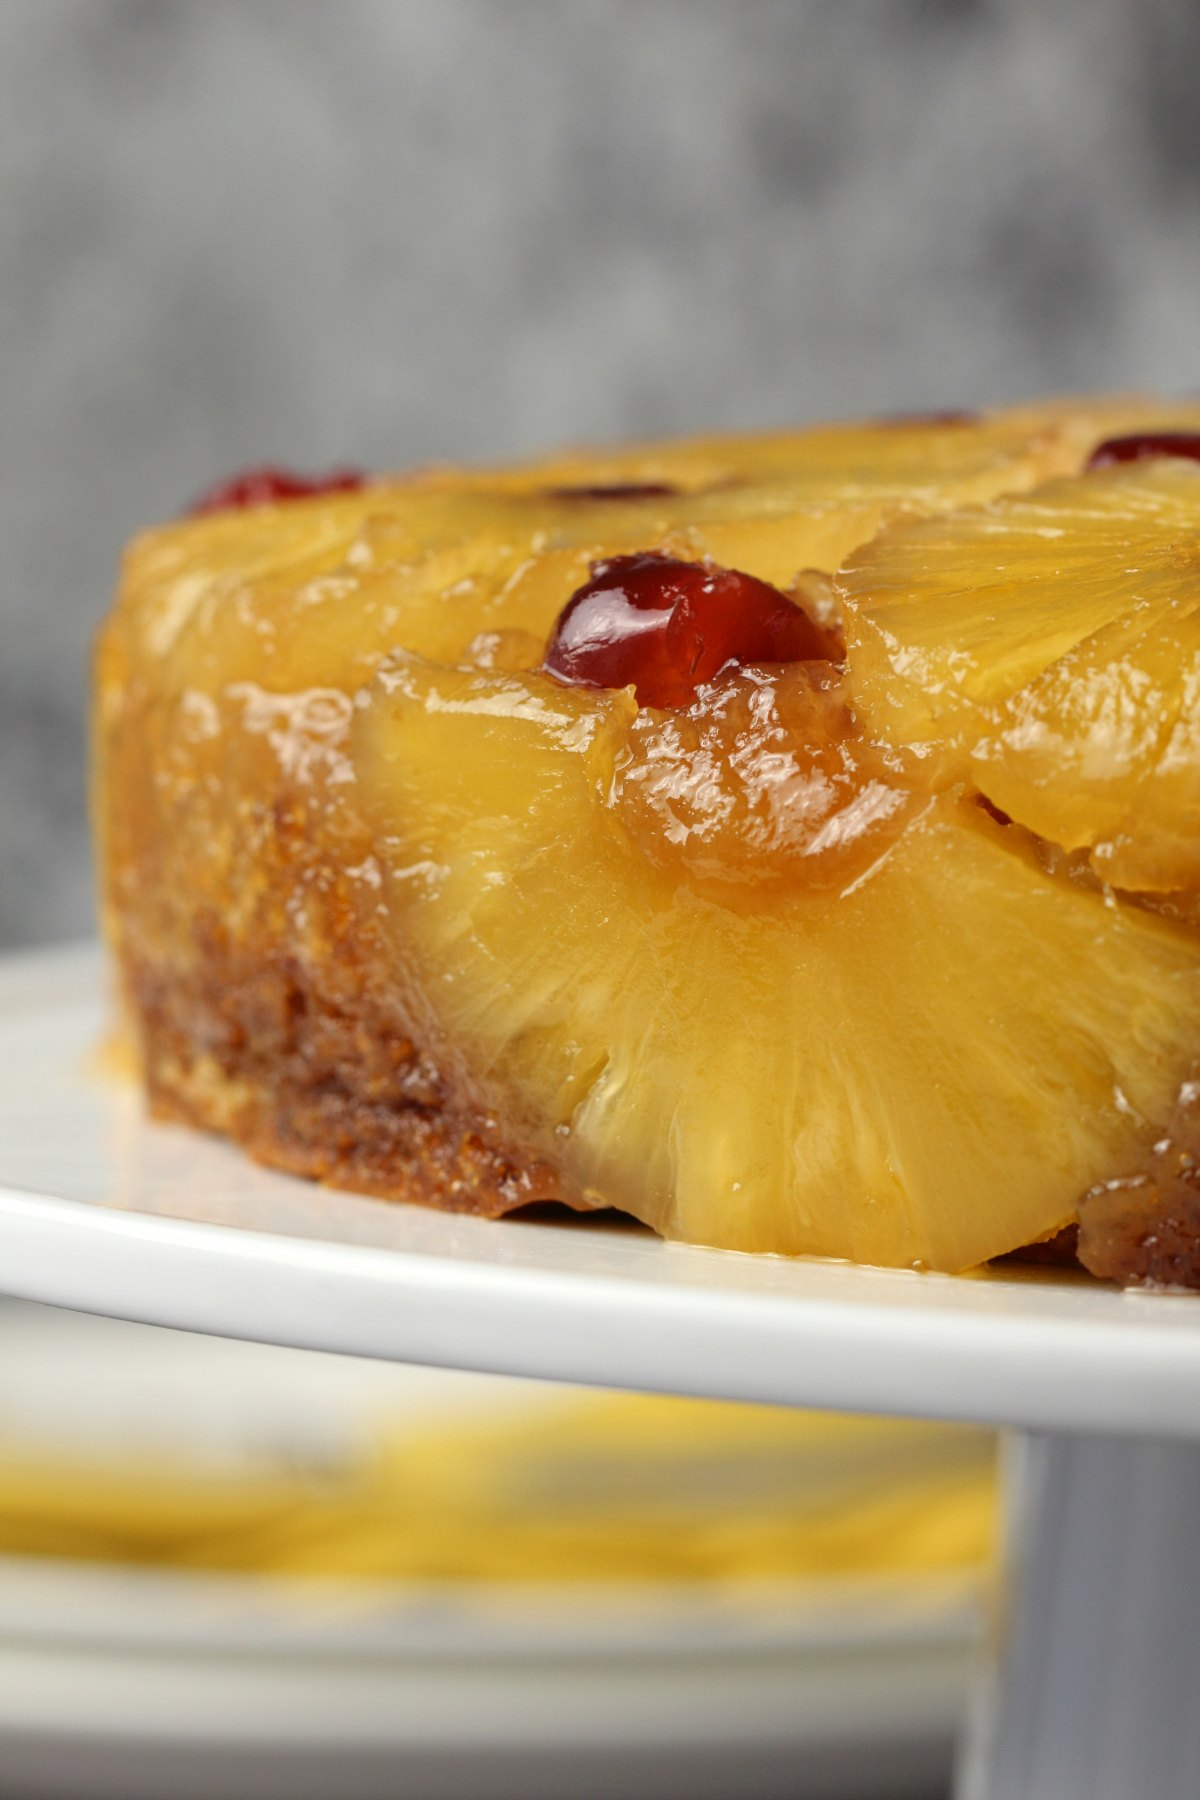 Vegan pineapple upside down cake on a white cake stand.